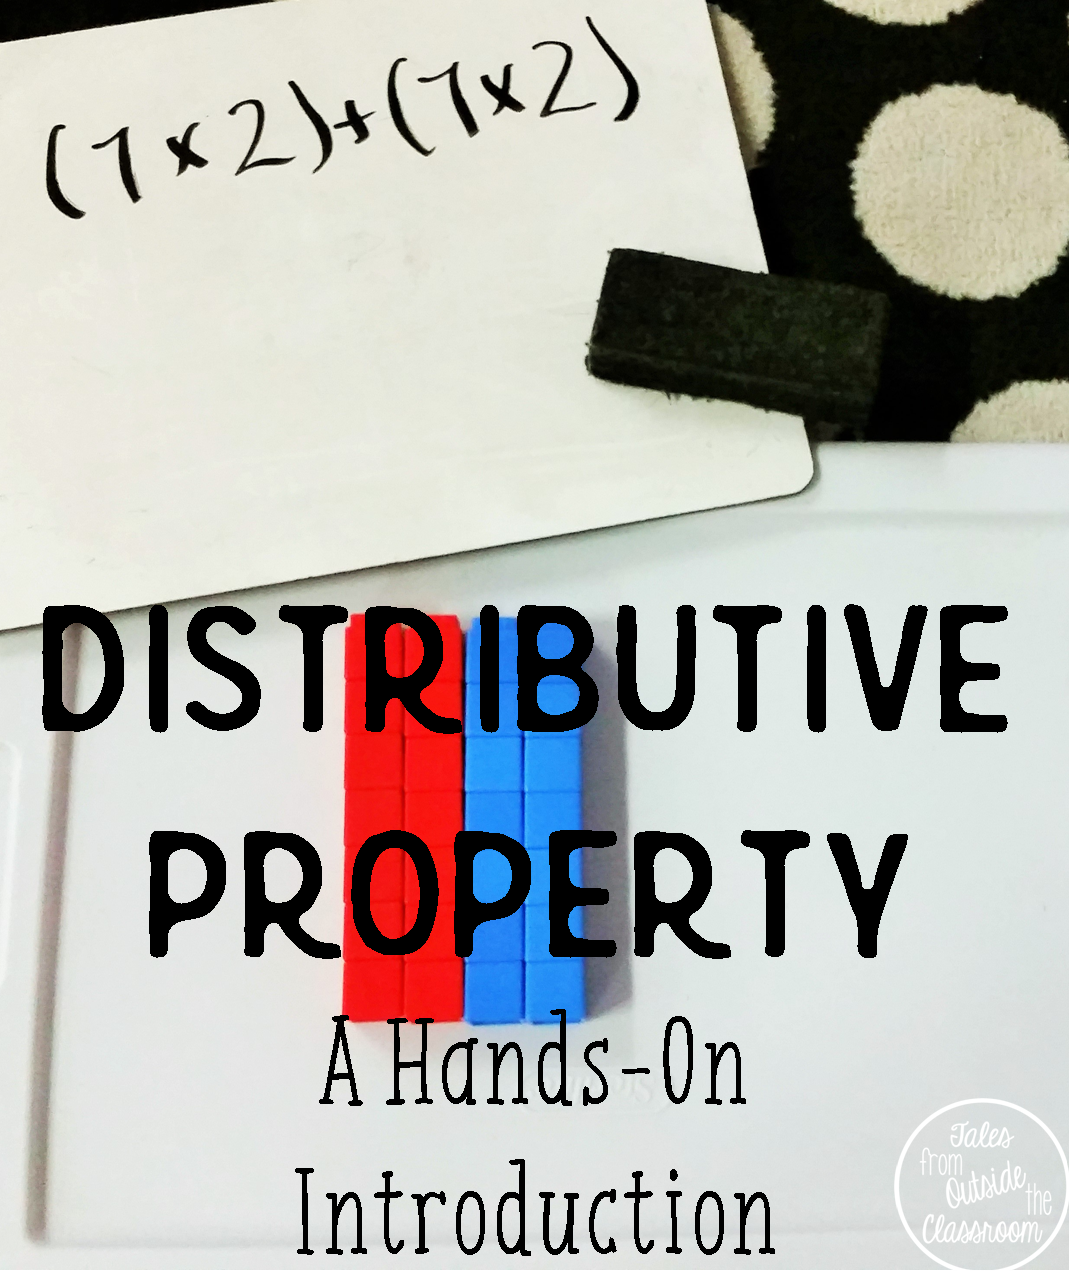 Introducing The Distributive Property